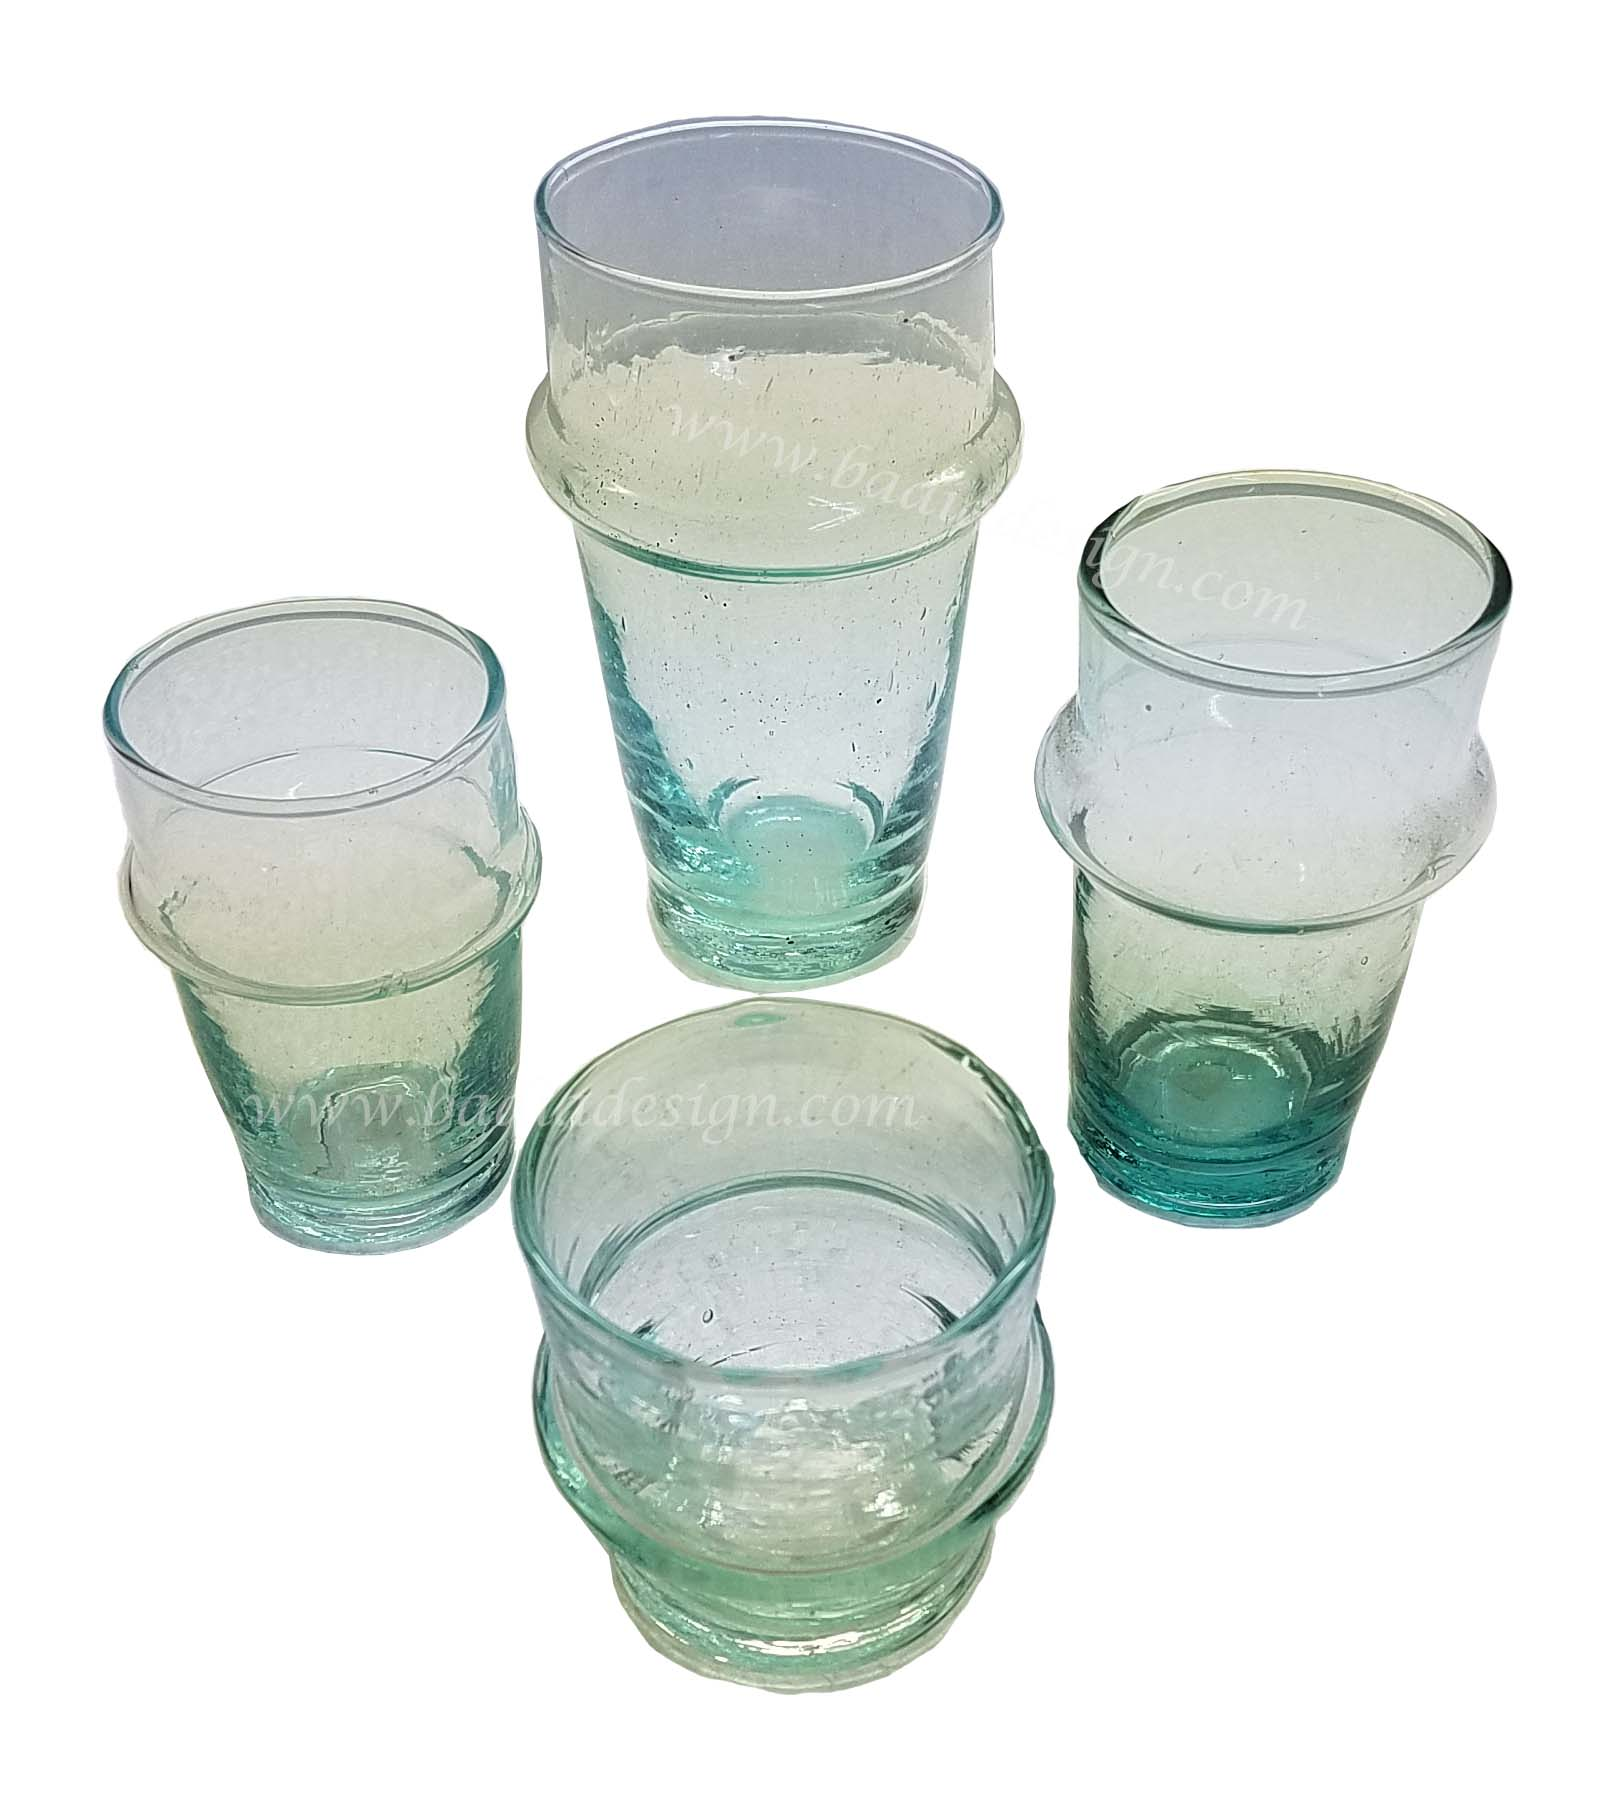 moroccan-clear-tea-glasses-tg021.jpg